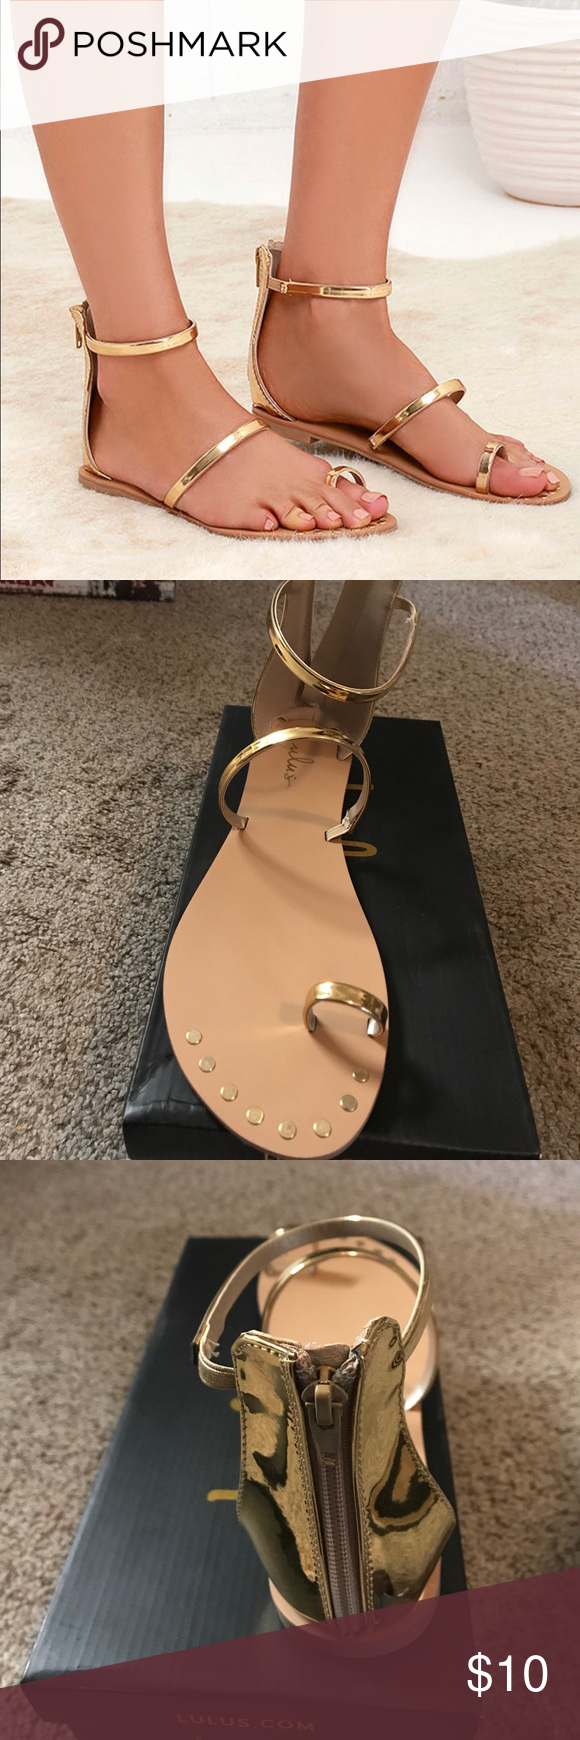 daf9a99bf19 ACHILLES GOLD FLAT ANKLE STRAP SANDALS We definitely have a weakness for  the Achilles Gold Flat Ankle Strap Sandals! Three metallic gold bands  include a toe ...